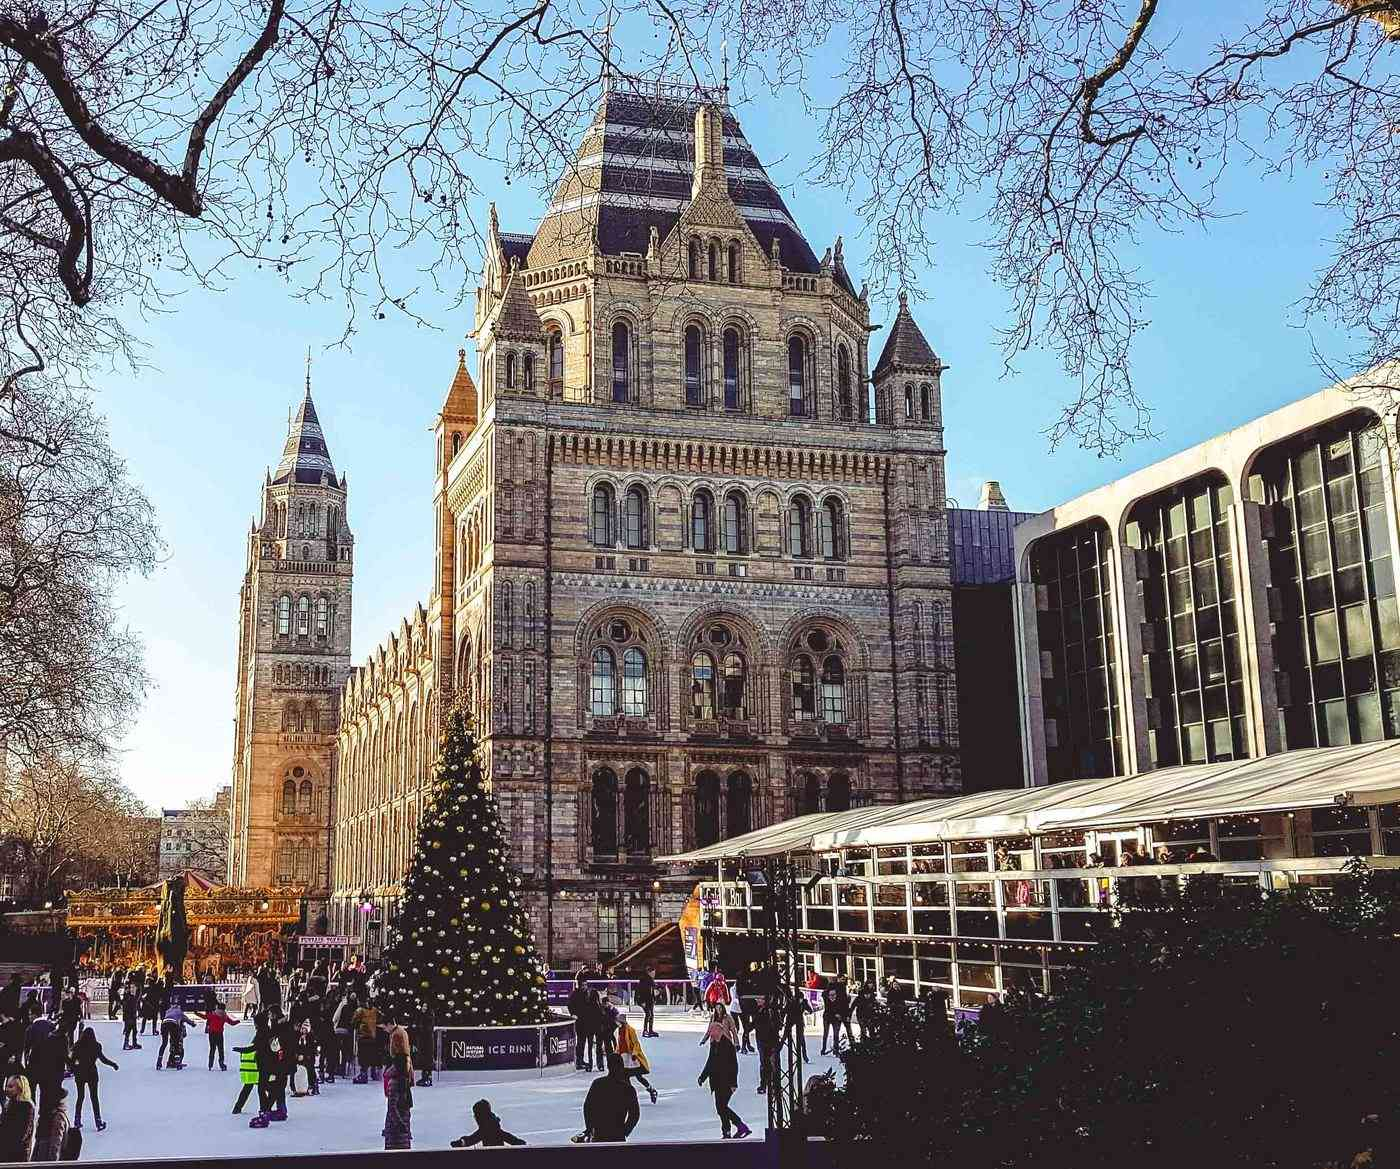 Christmas at the Natural History Museum is magical. It's all decked out with Christmas trees and an ice-staking ring. Do make sure you book in advance as it can get super busy.